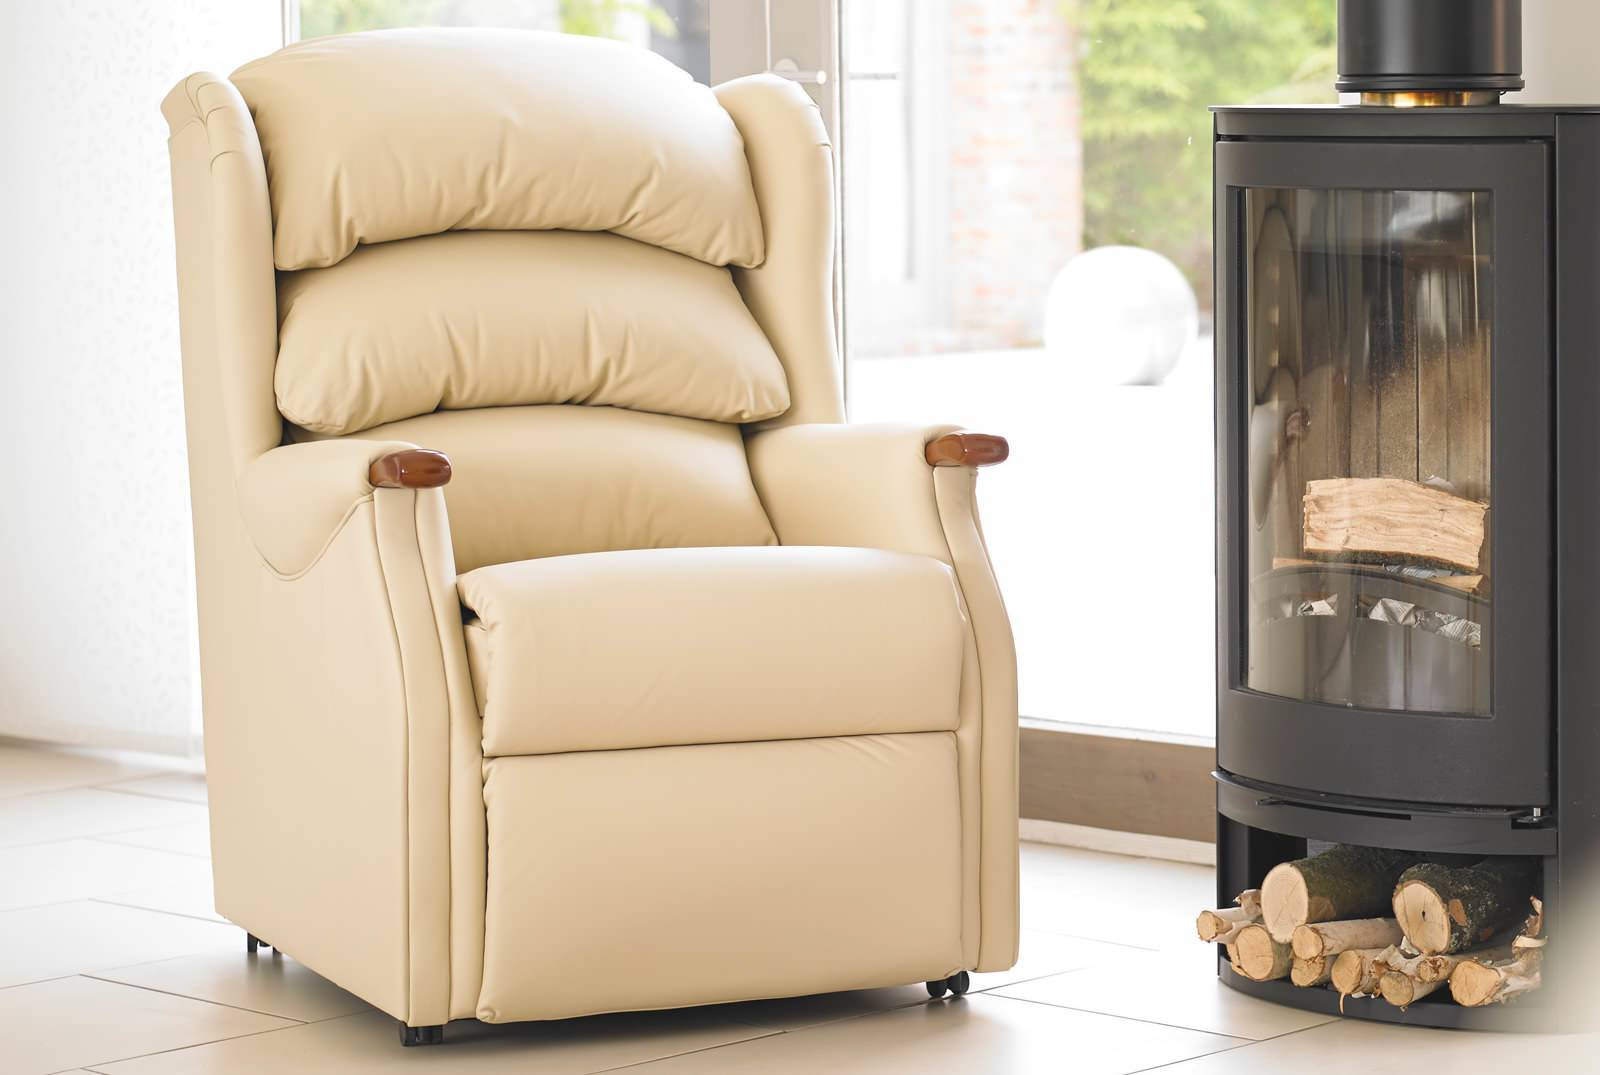 Linton Comfort Chair in Camden Cream